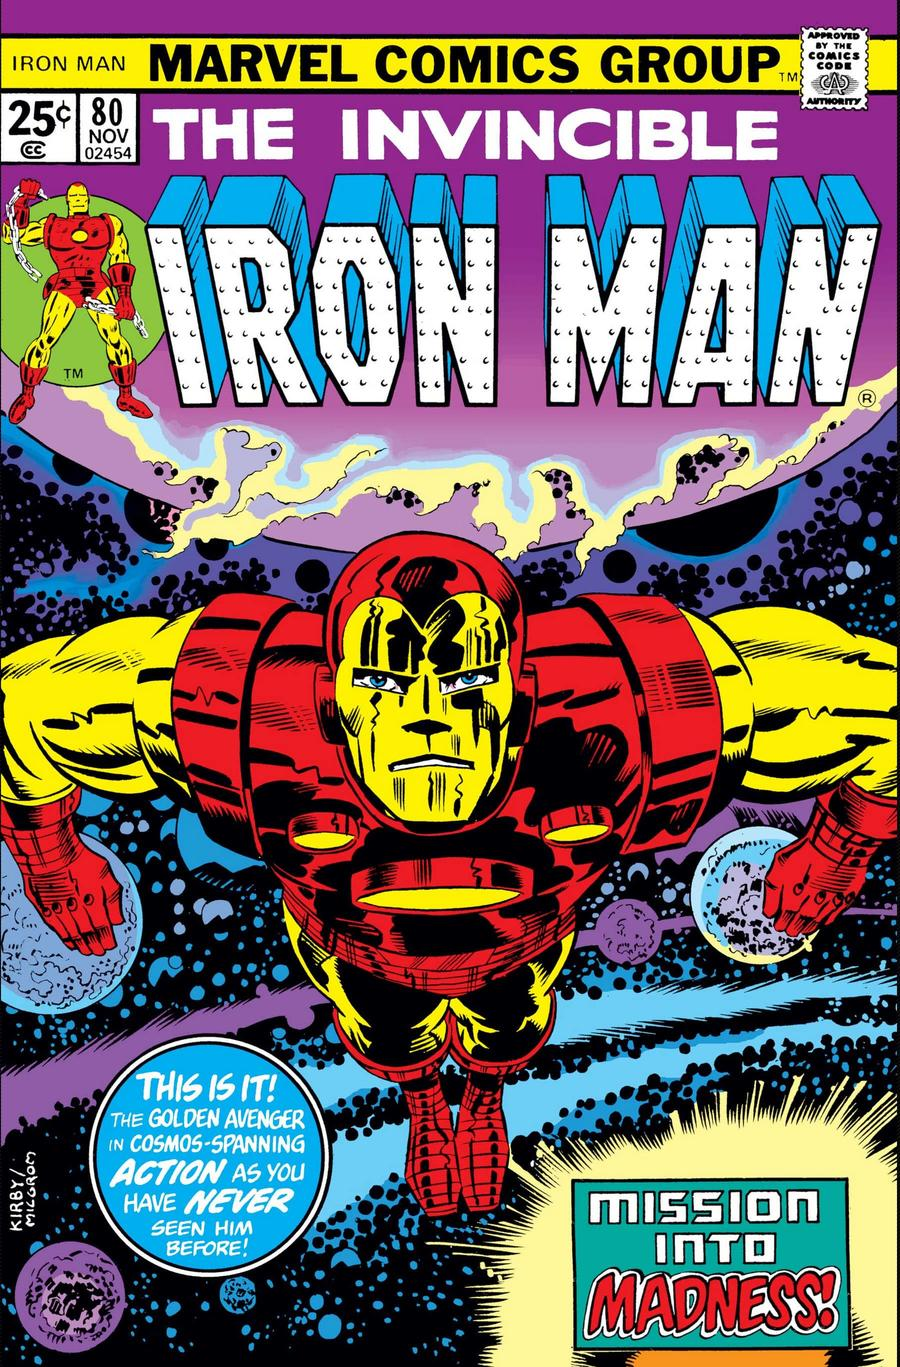 Red and Gold Iron Man Suit